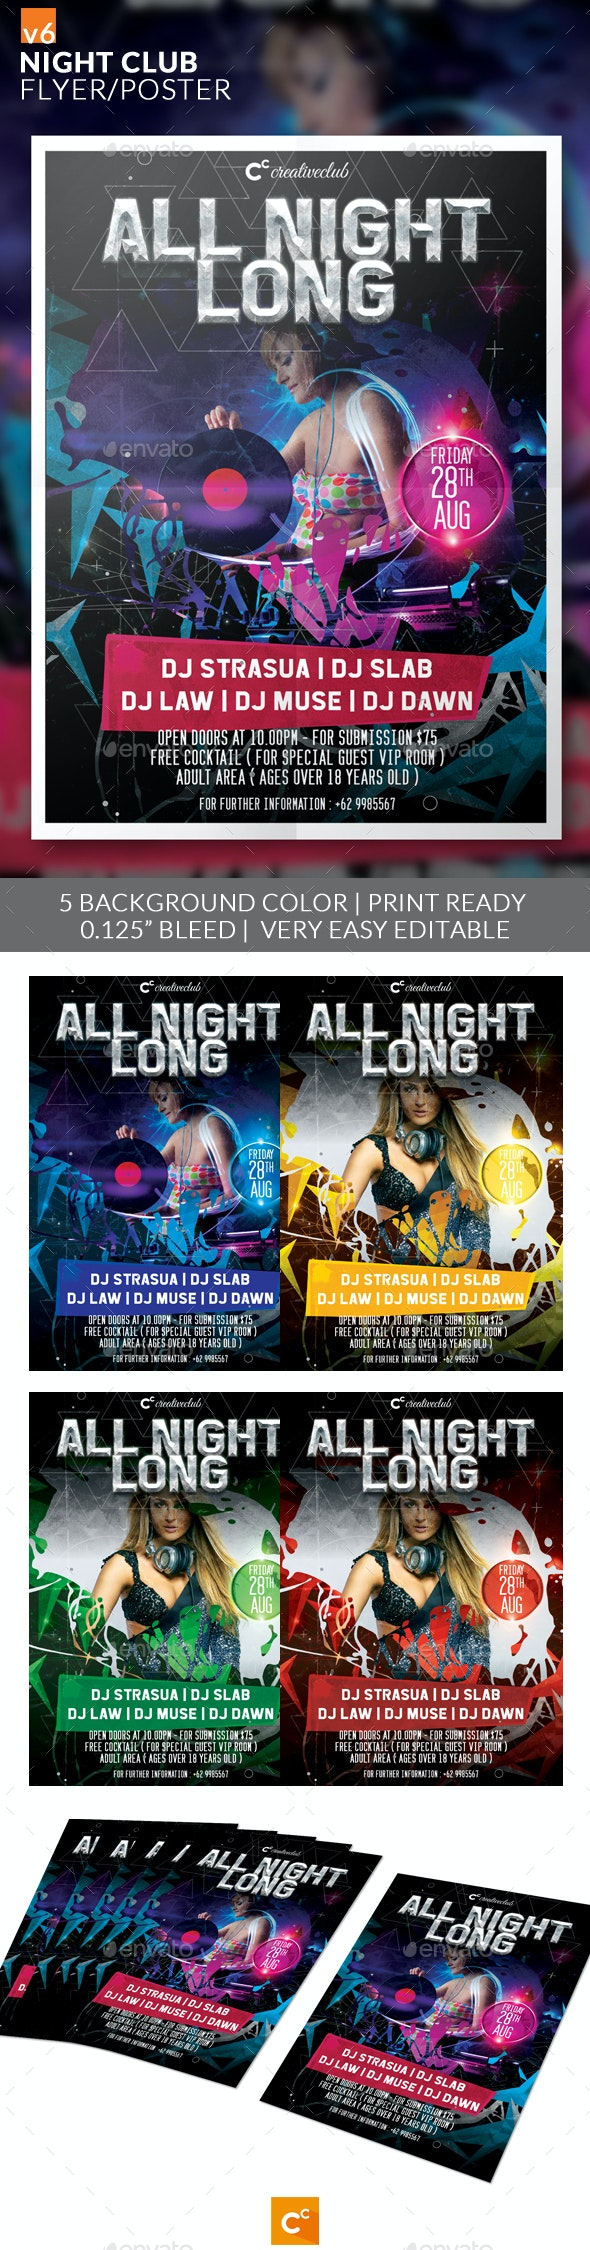 Night Club Flyer/Poster v6 - Clubs & Parties Events